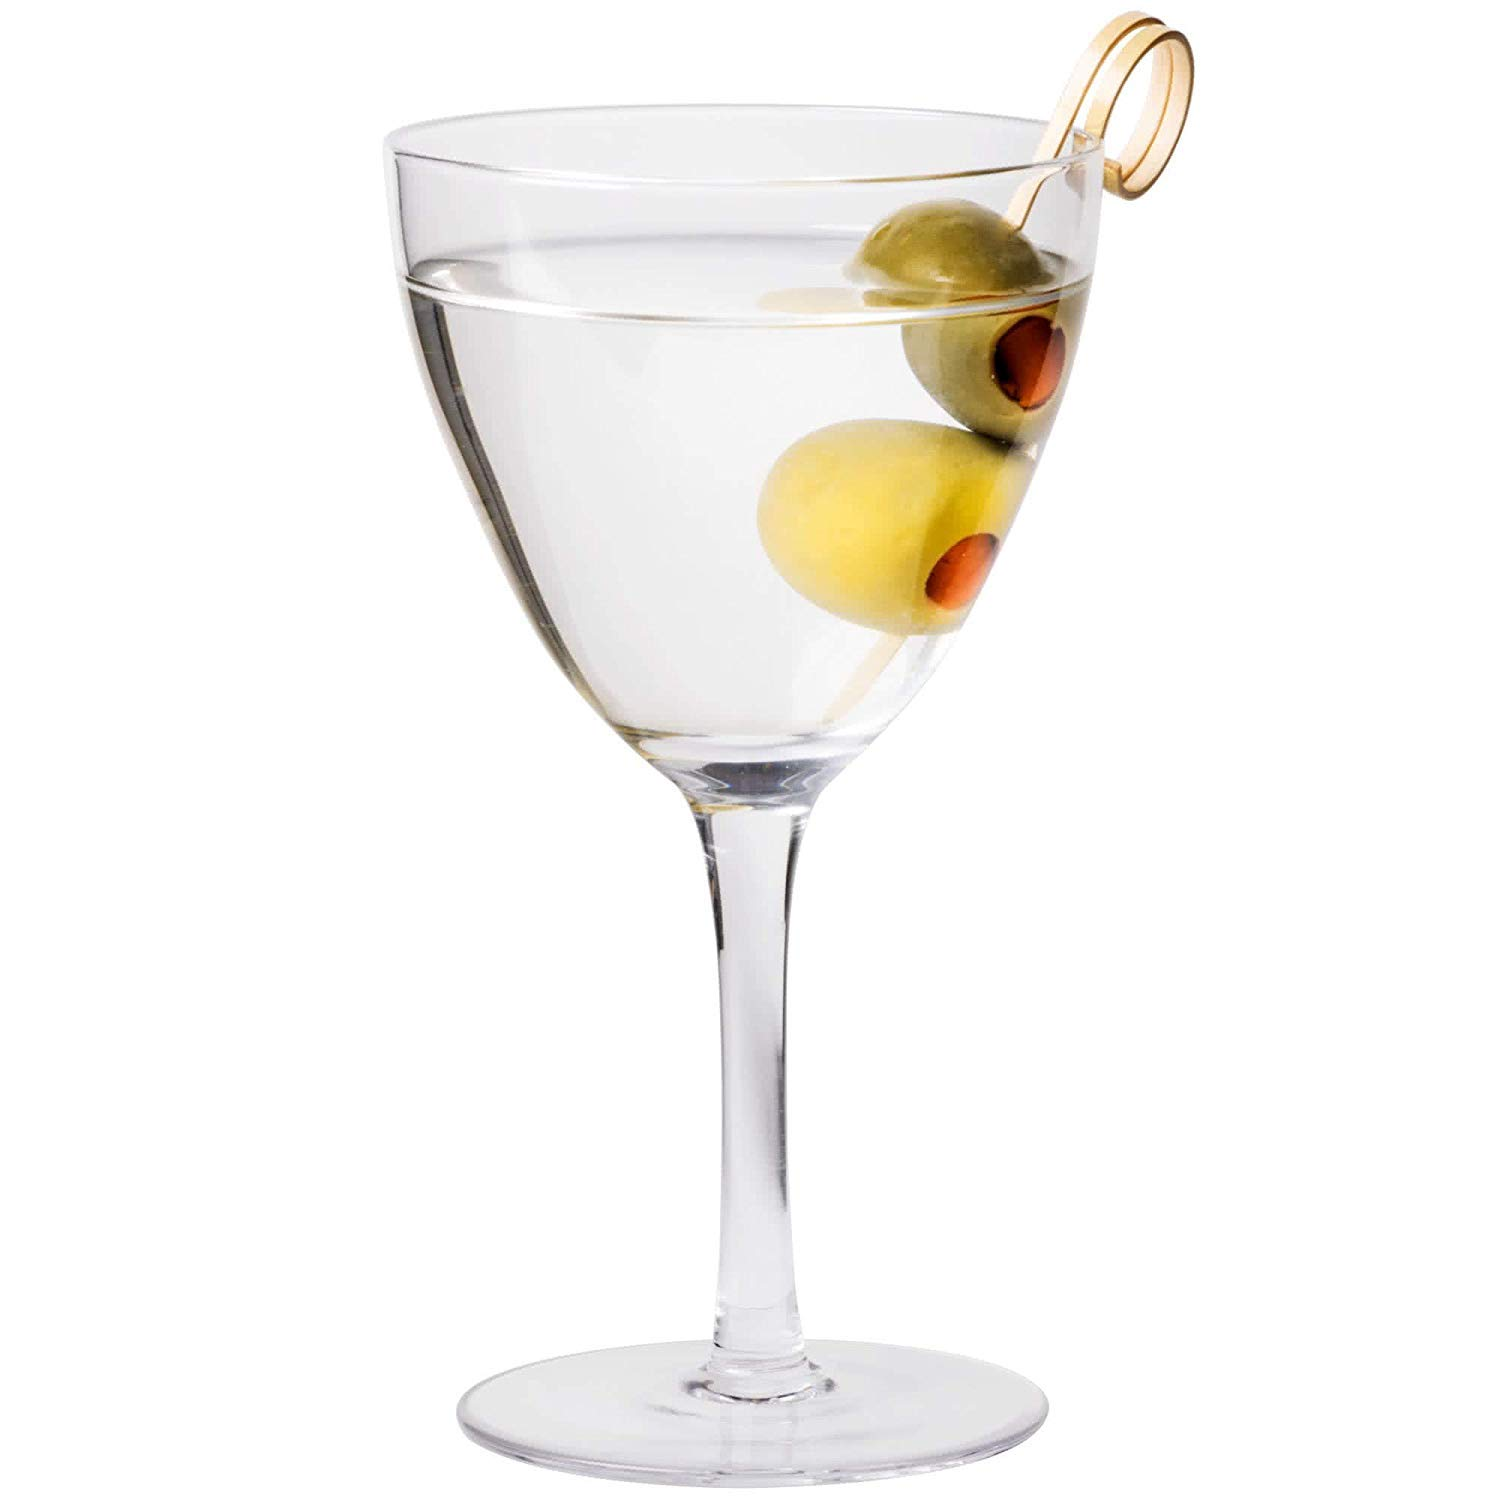 Core 6 oz. Nick and Nora Vintage Martini Glass - 6/Box by TableTop King